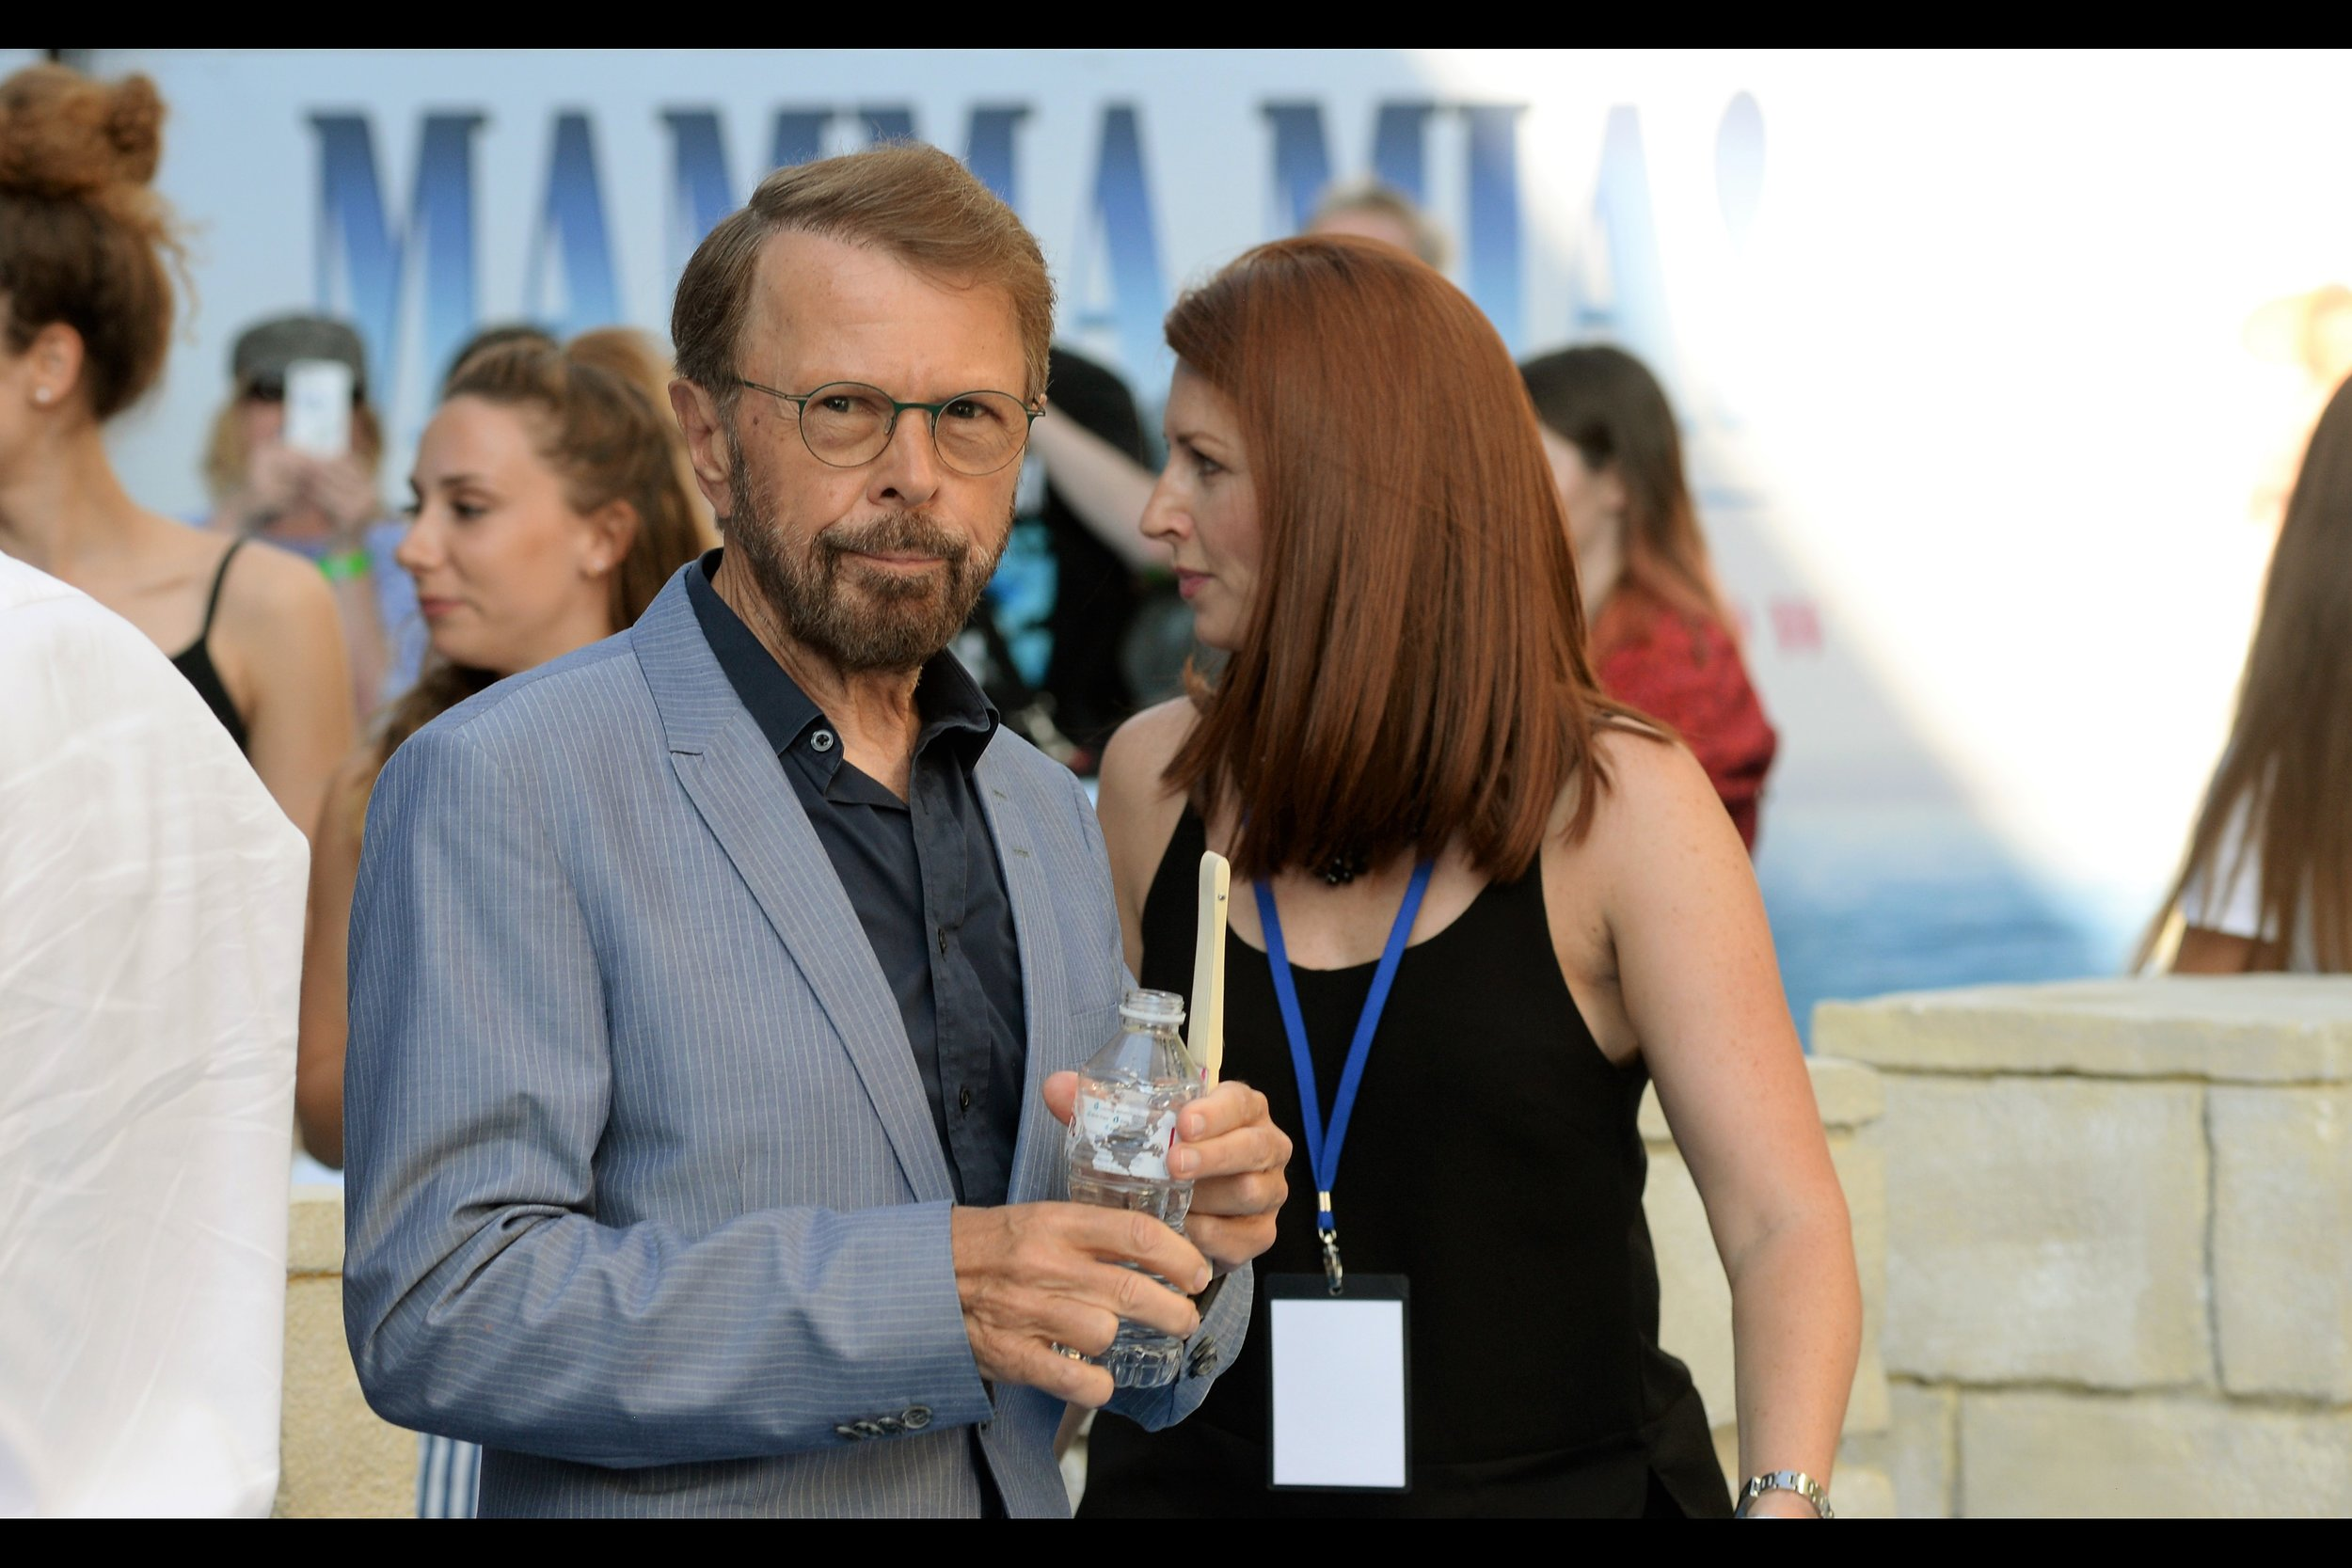 Bjorn Ulvaeus is one quarter of ABBA... and just like every single person so far, the girls to my right have used a combination of charm, desperation, and harmlessness to induce him to sign autographs. Their skills are pretty amazing.